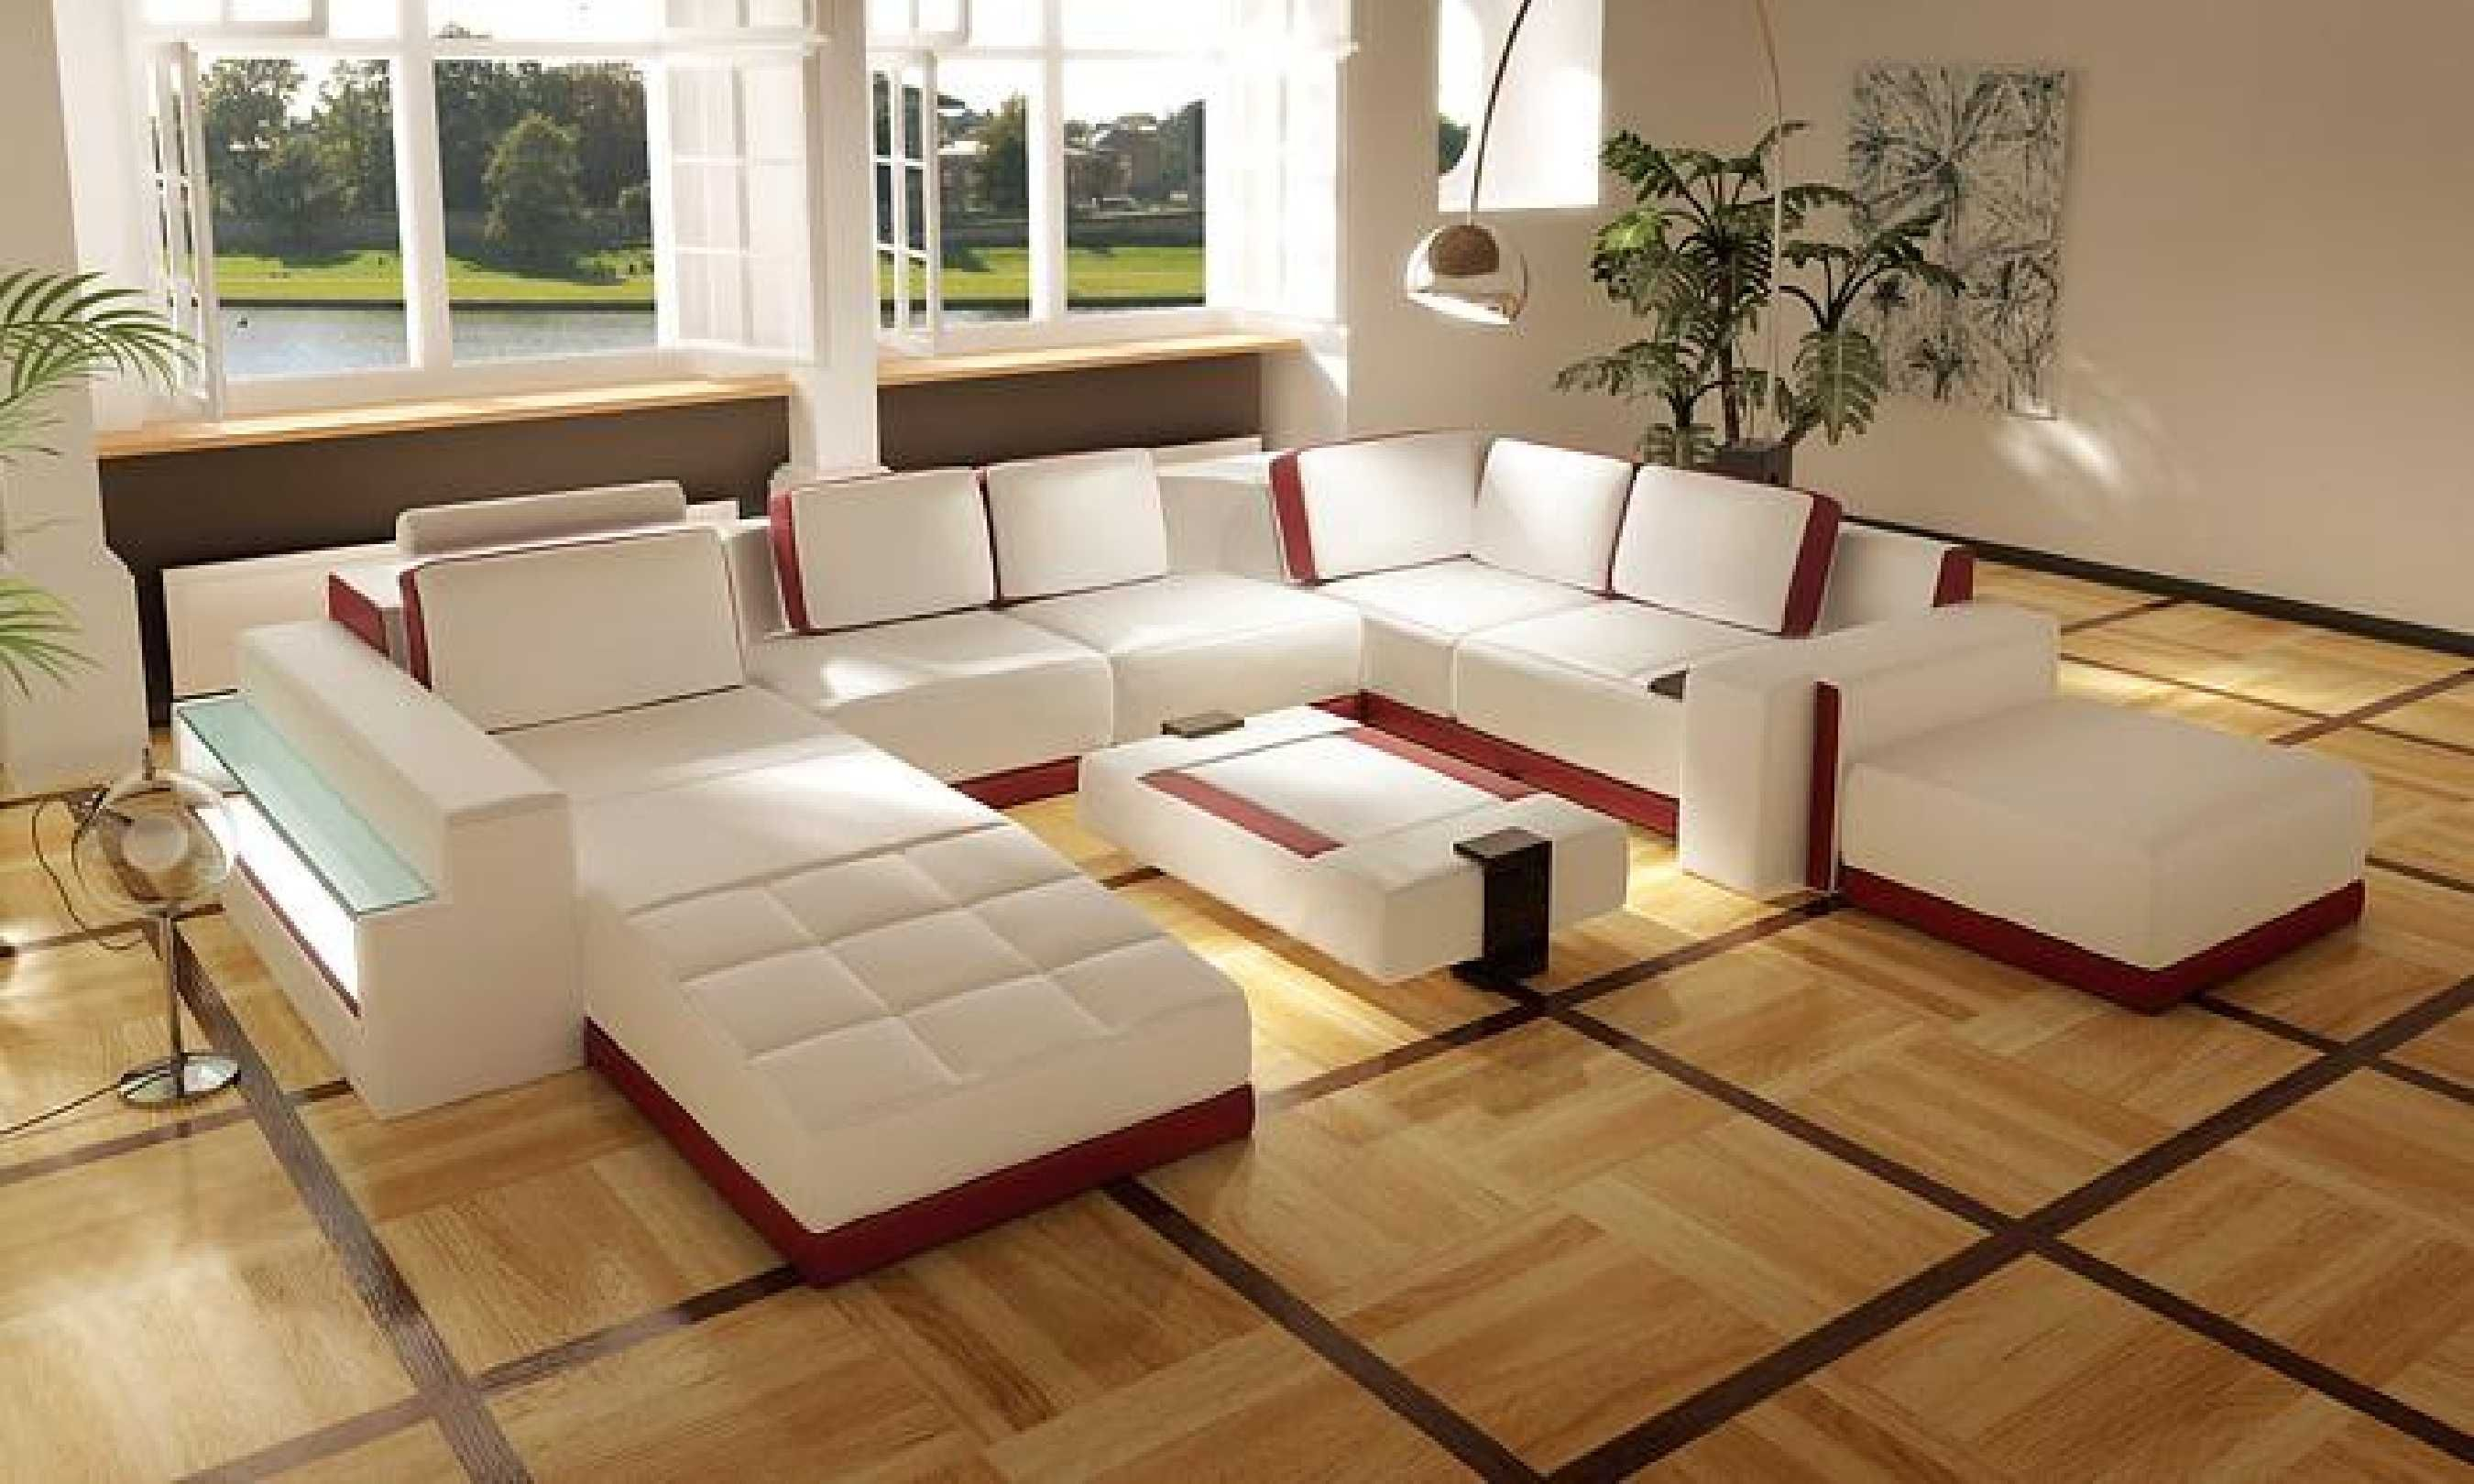 lots go living brick me to for your near dump full leather white big sets room the of sofa furniture place rooms livings best size